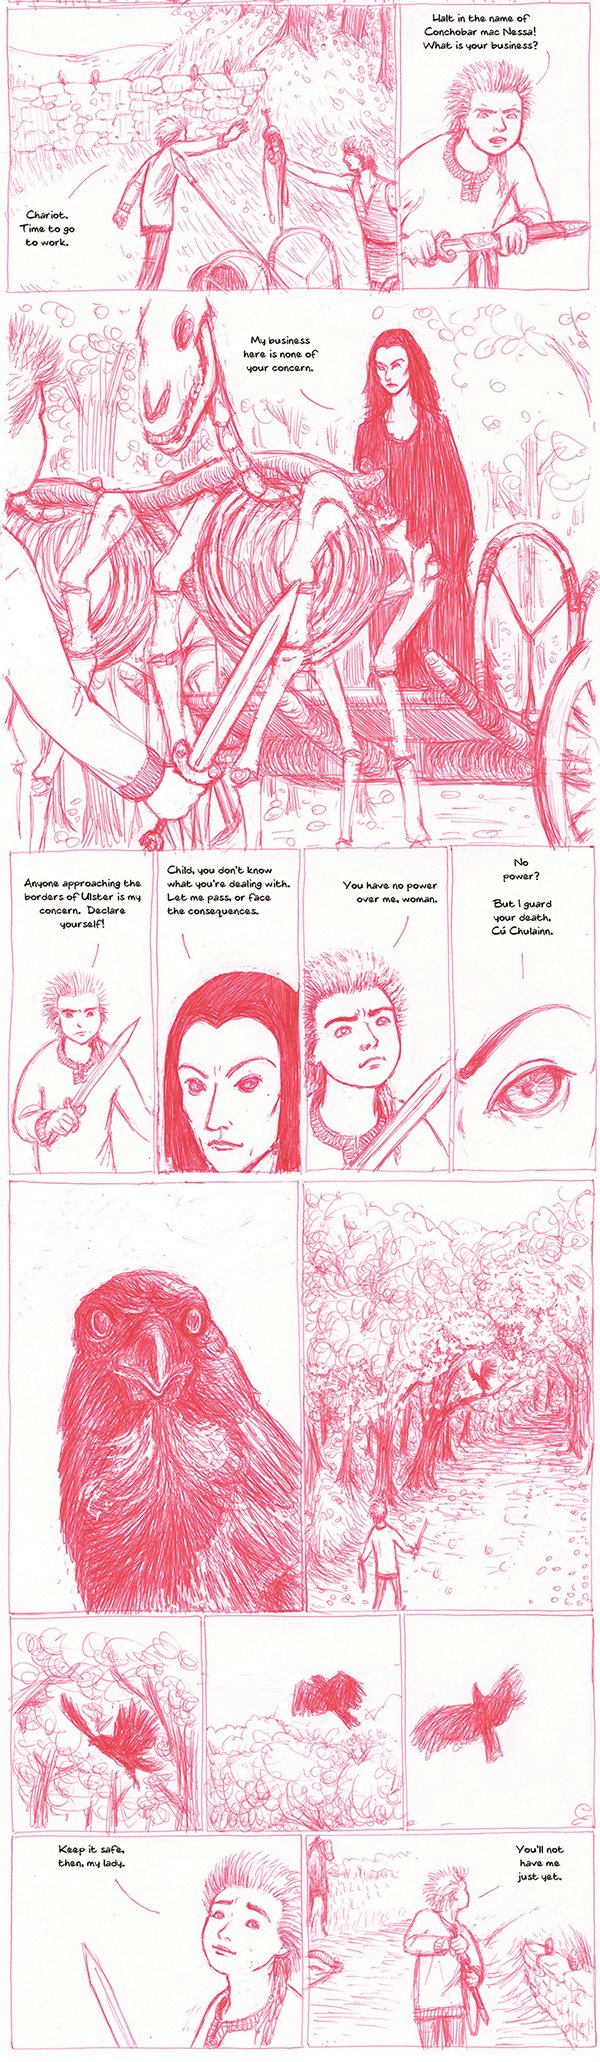 The Cattle Raid of Cooley issue 1 preview